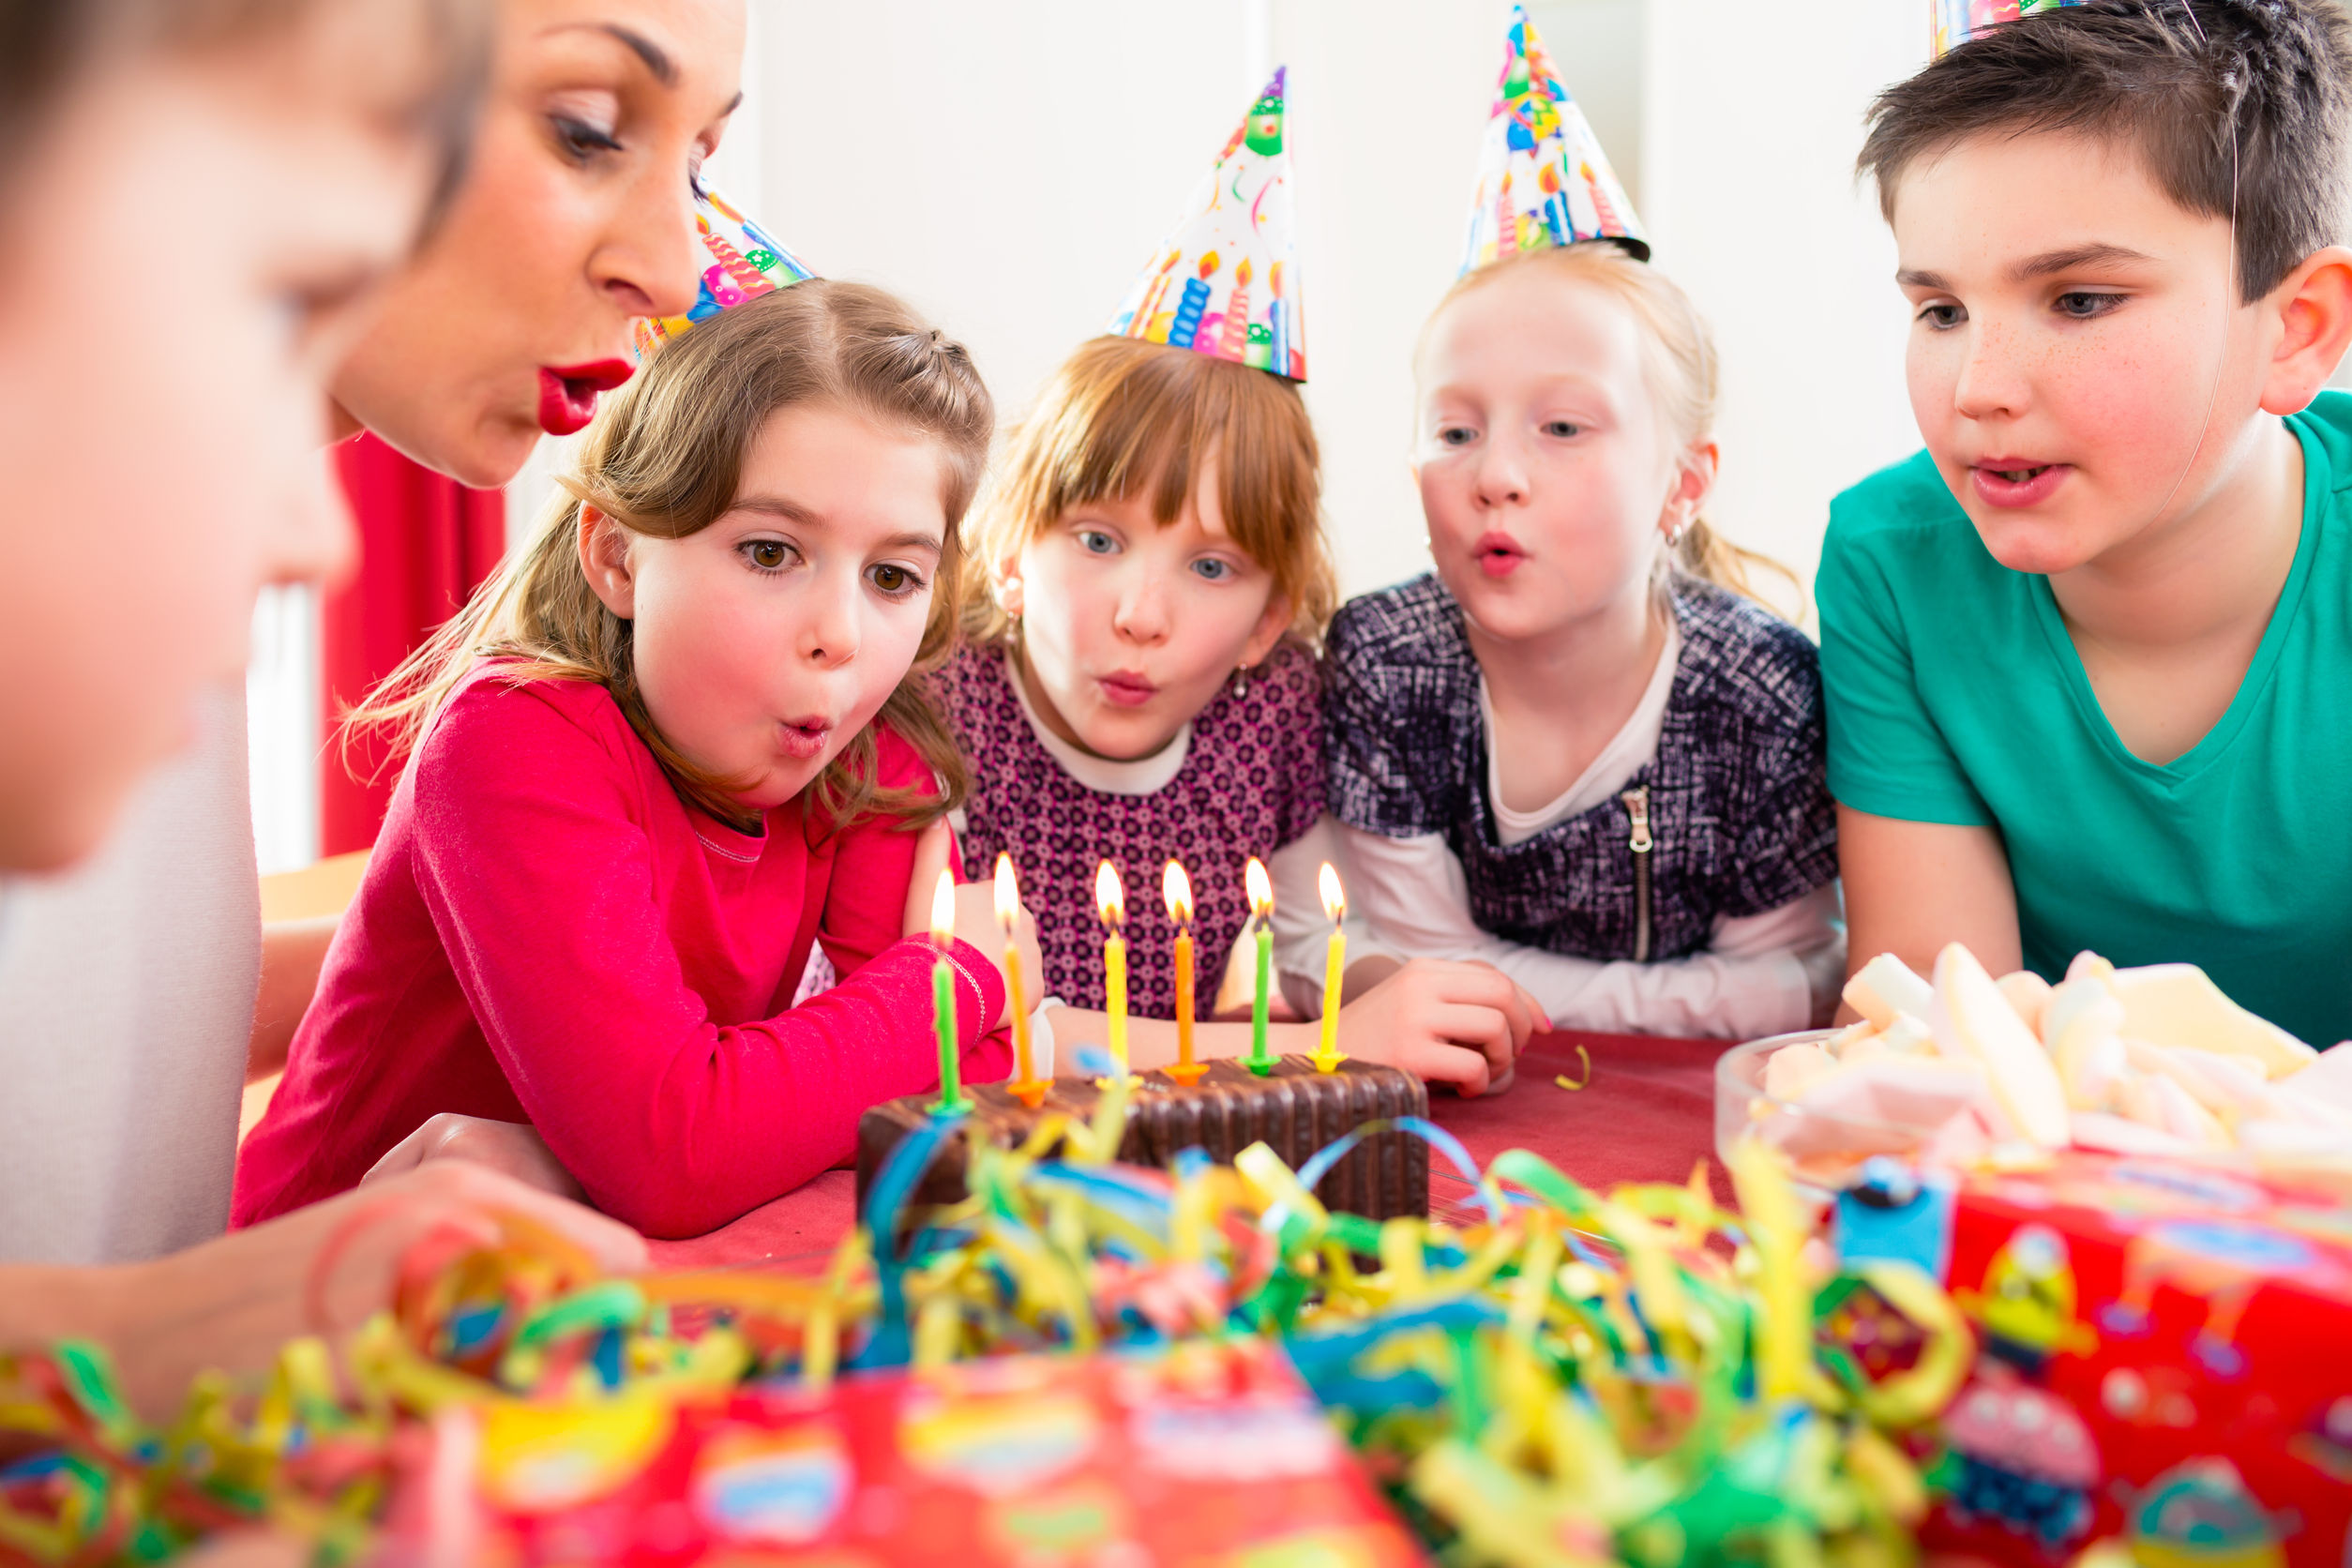 51585948 - child on birthday party blowing candles on cake being helped by friends and the mother